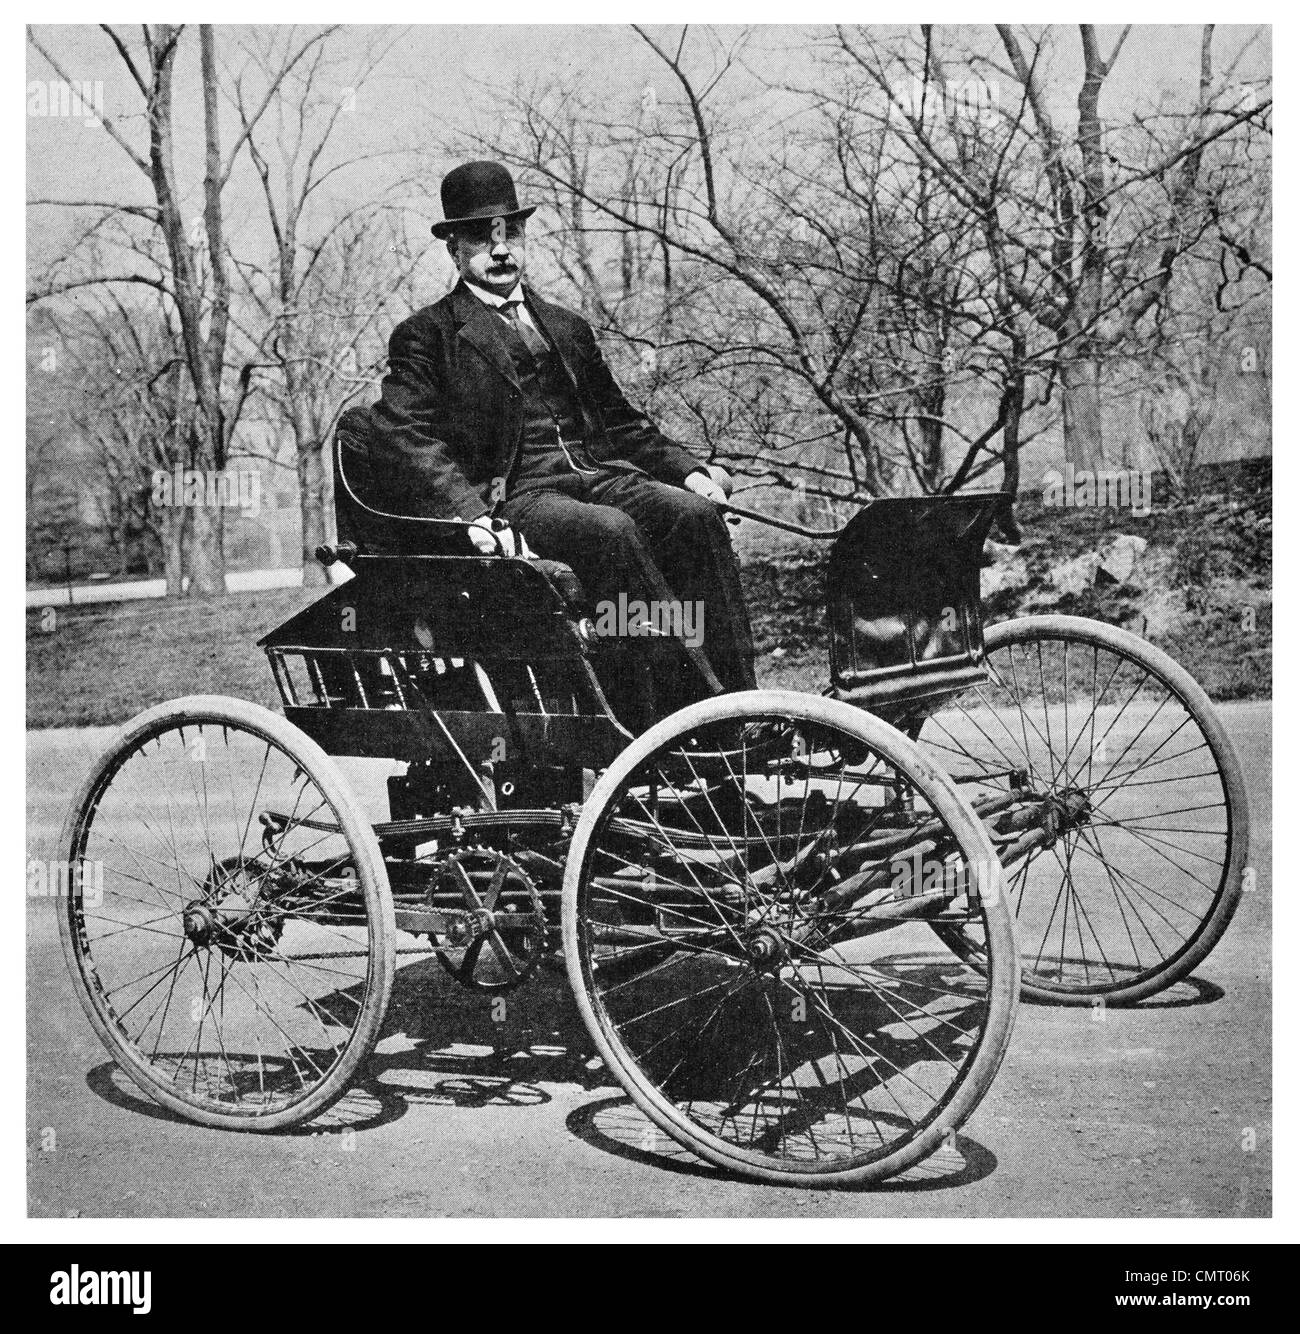 1923 Bicycle and buggy early days of Automotive industry car vehicle - Stock Image